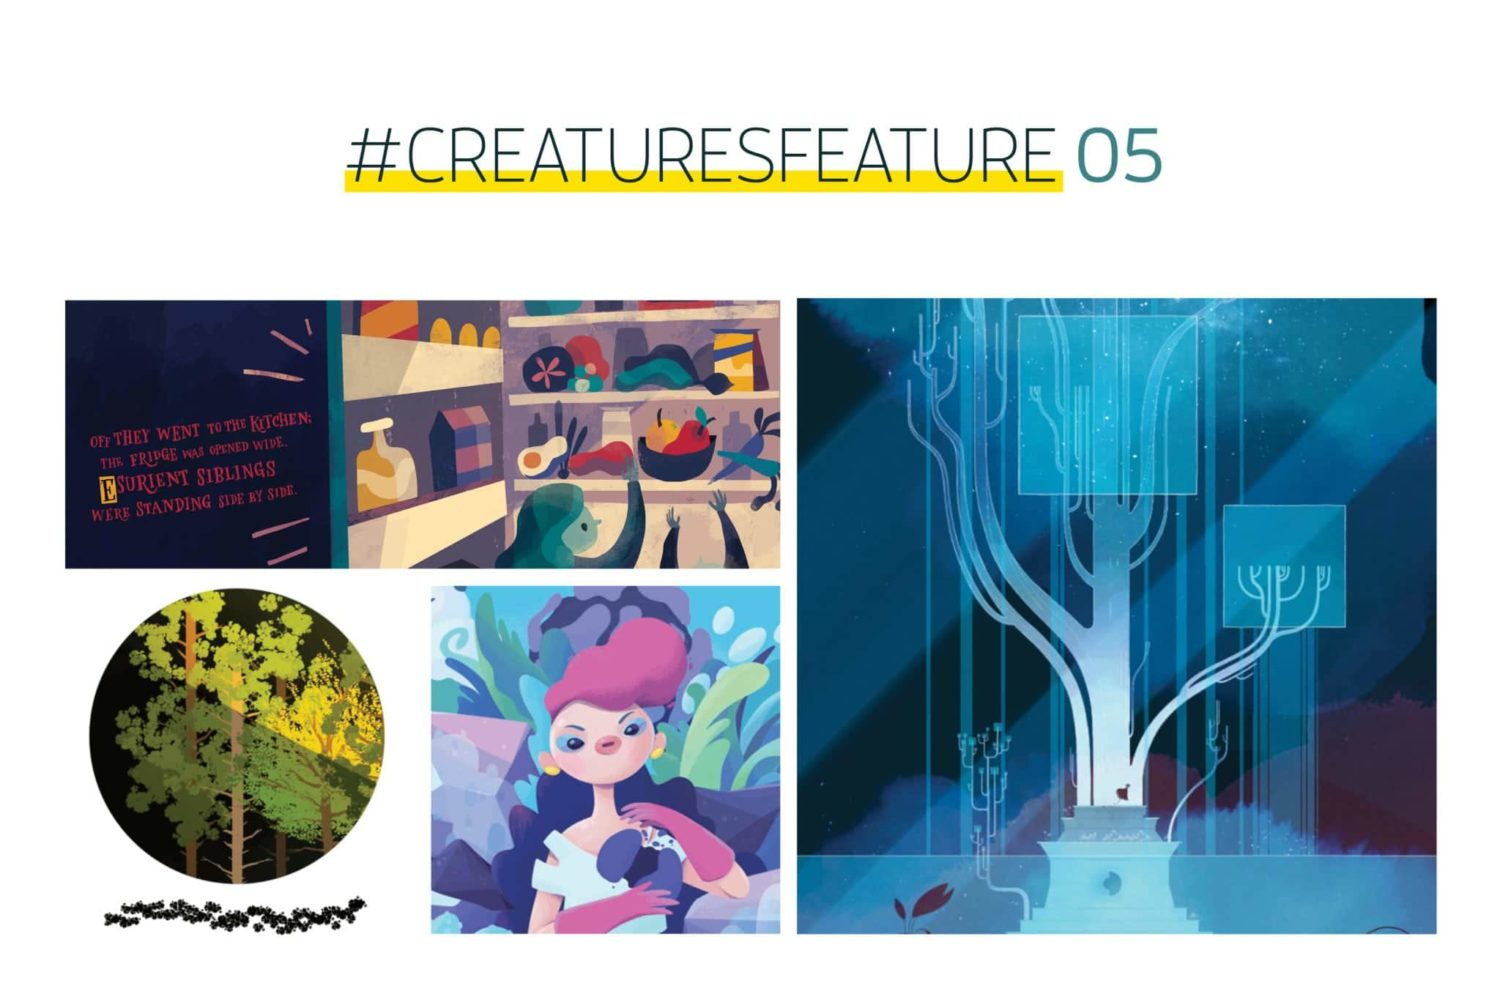 Creature Feature 05